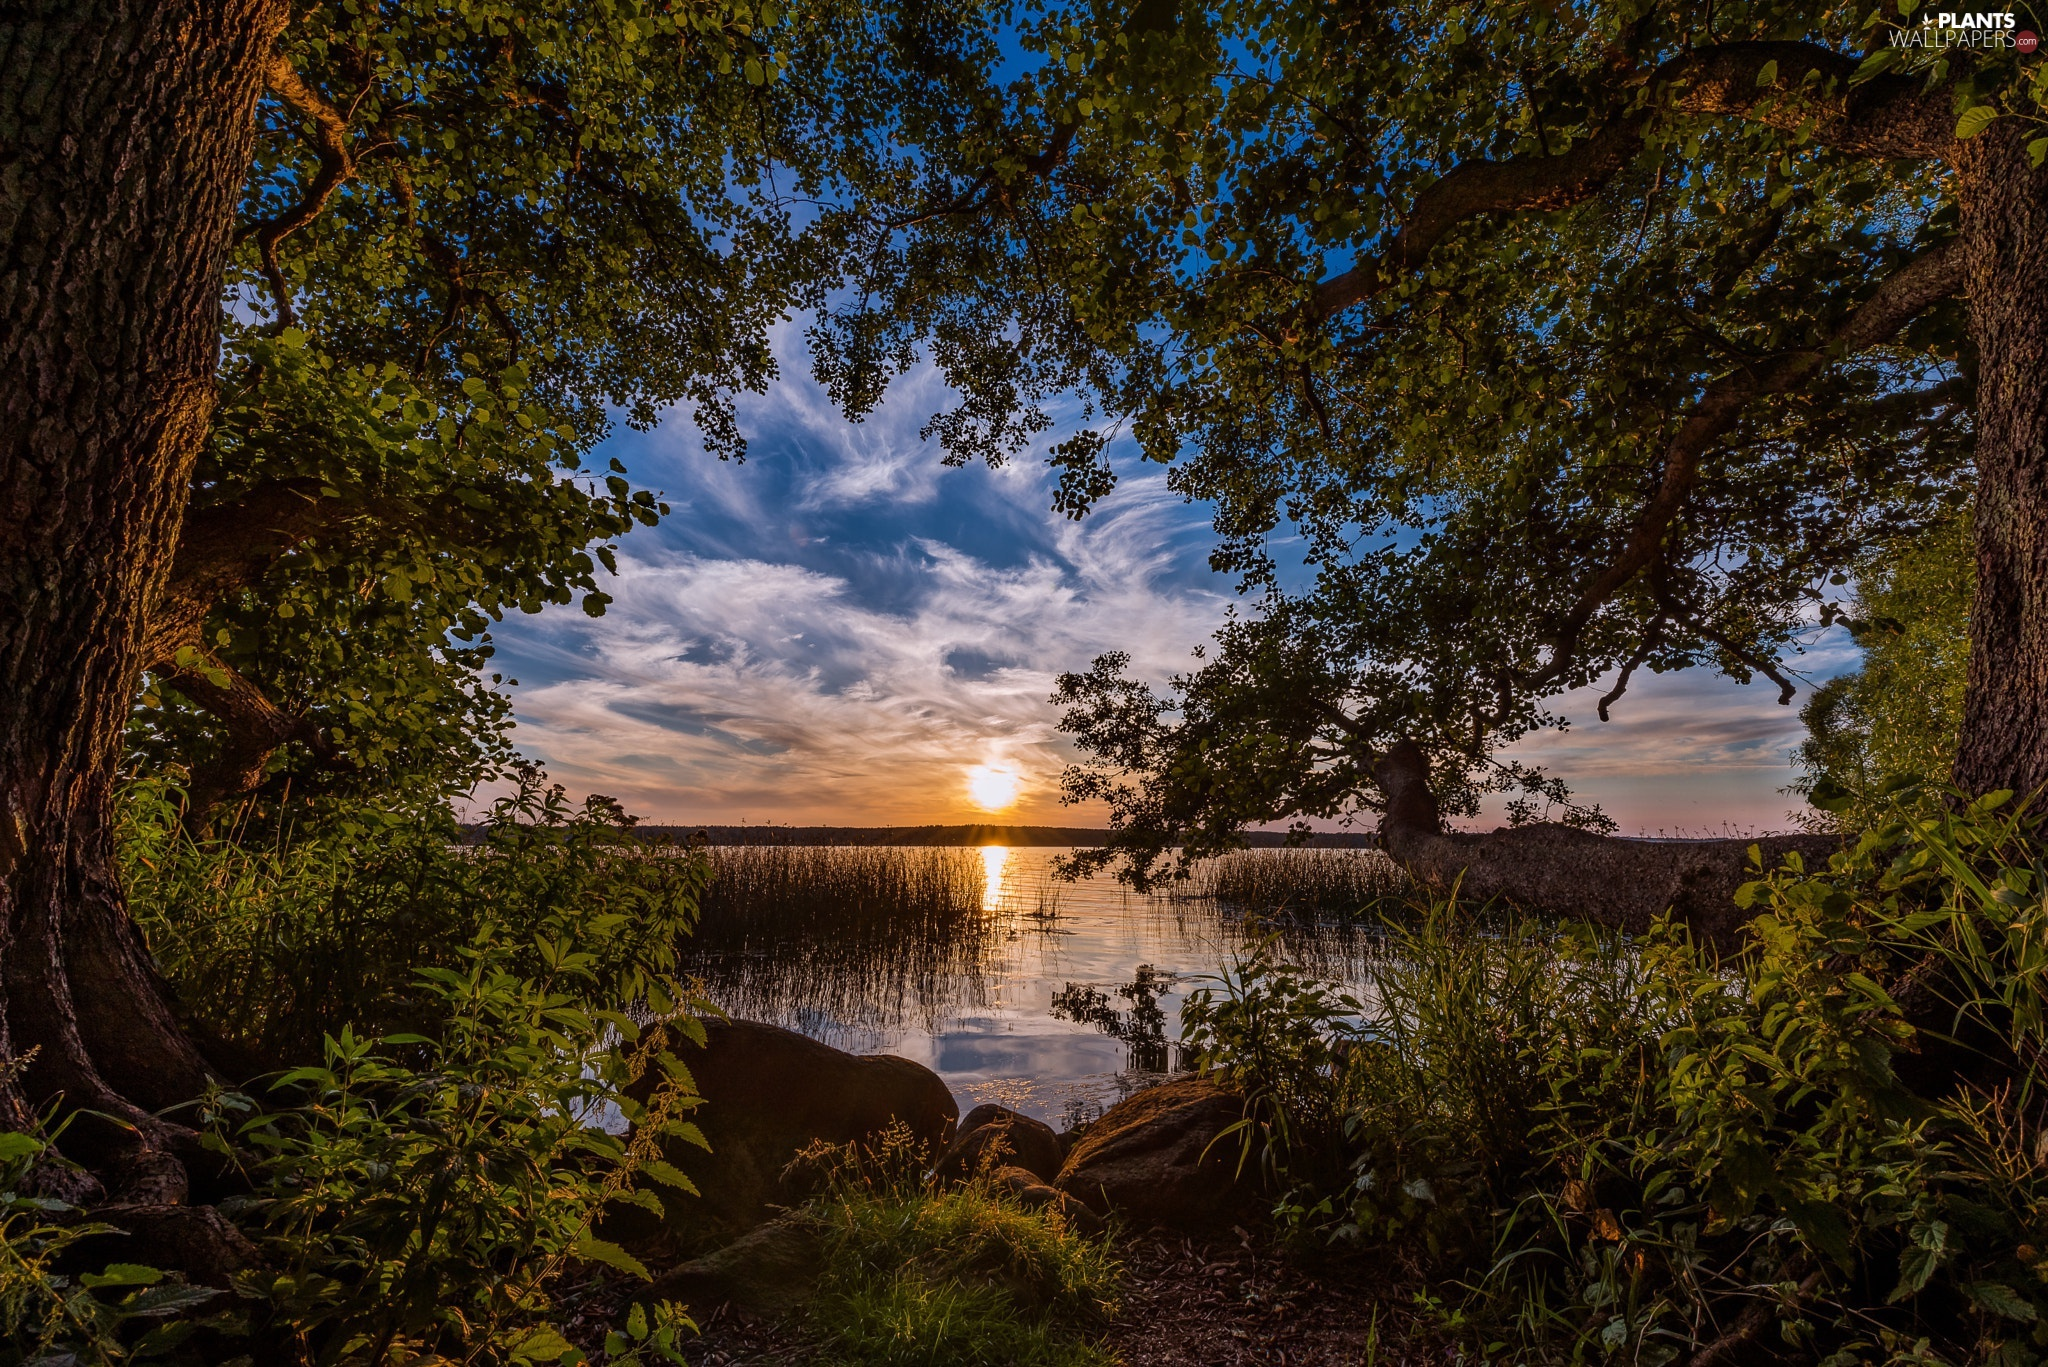 viewes, coast, Great Sunsets, Stones, Plants, trees, lake, grass